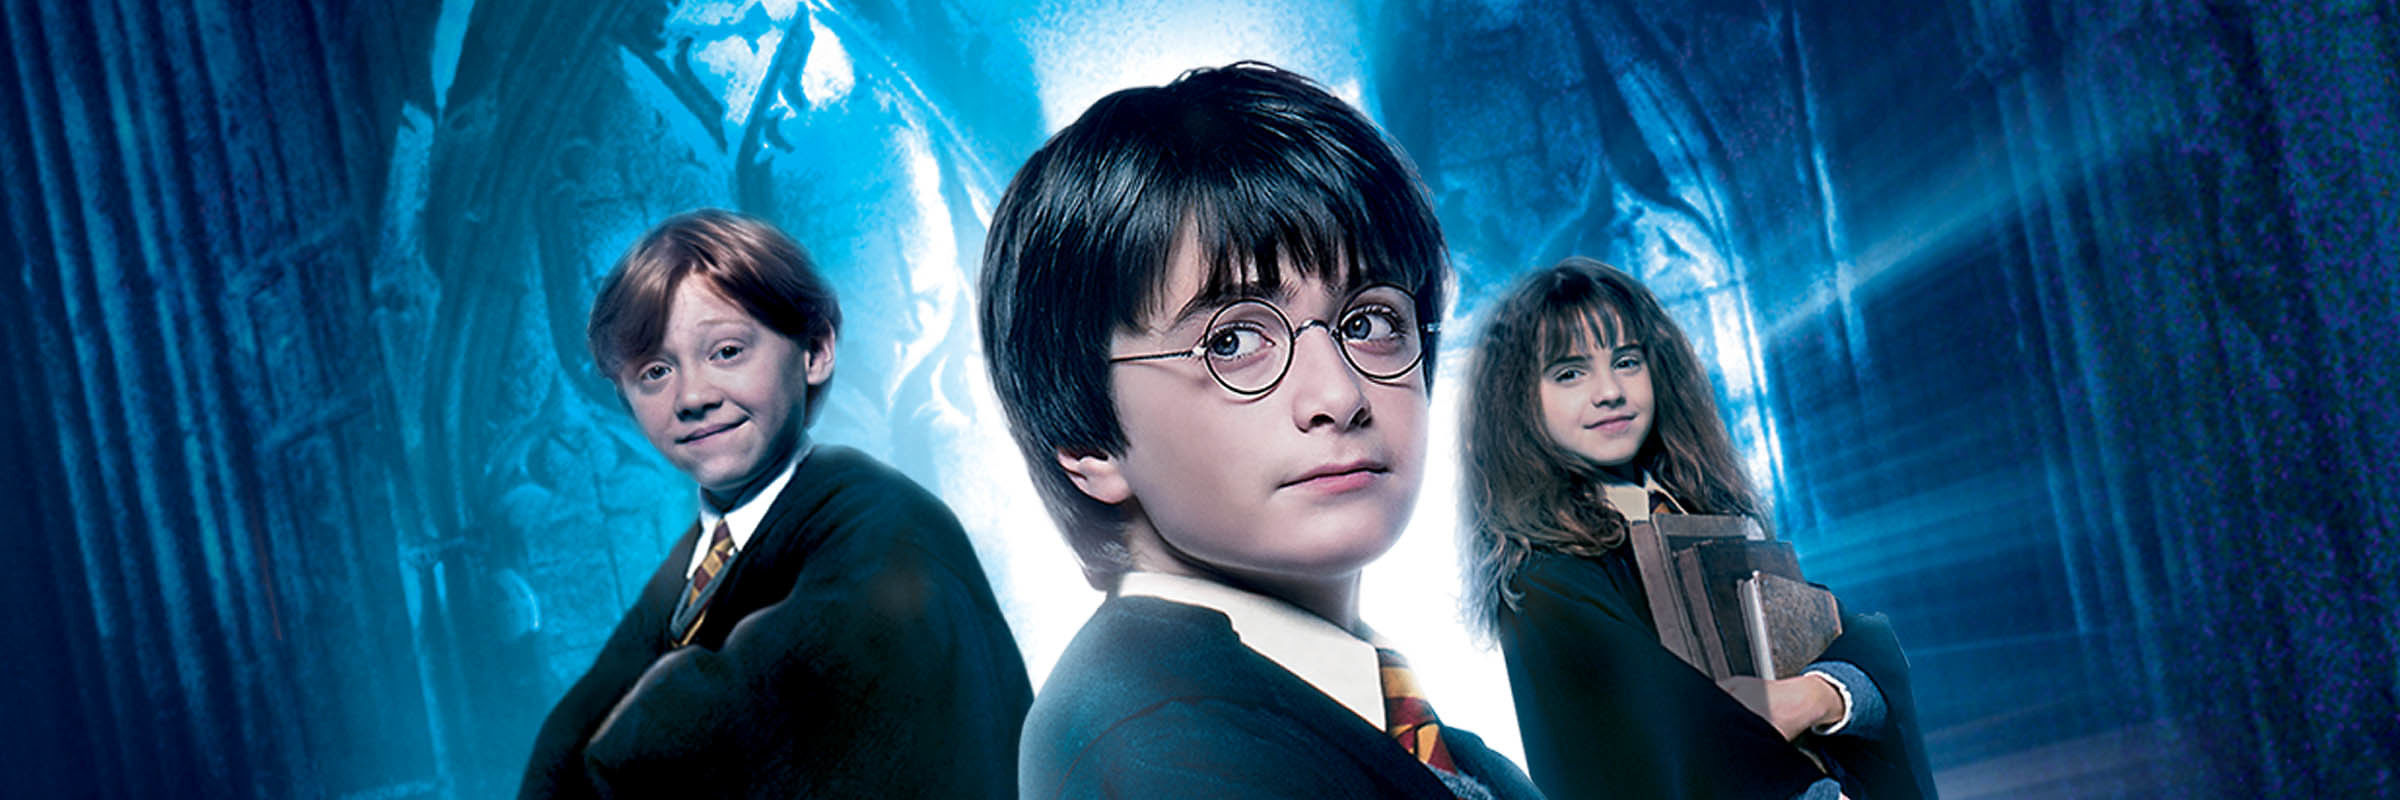 Here is the Banner of Harry Potter and the Sorcerer's Stone!